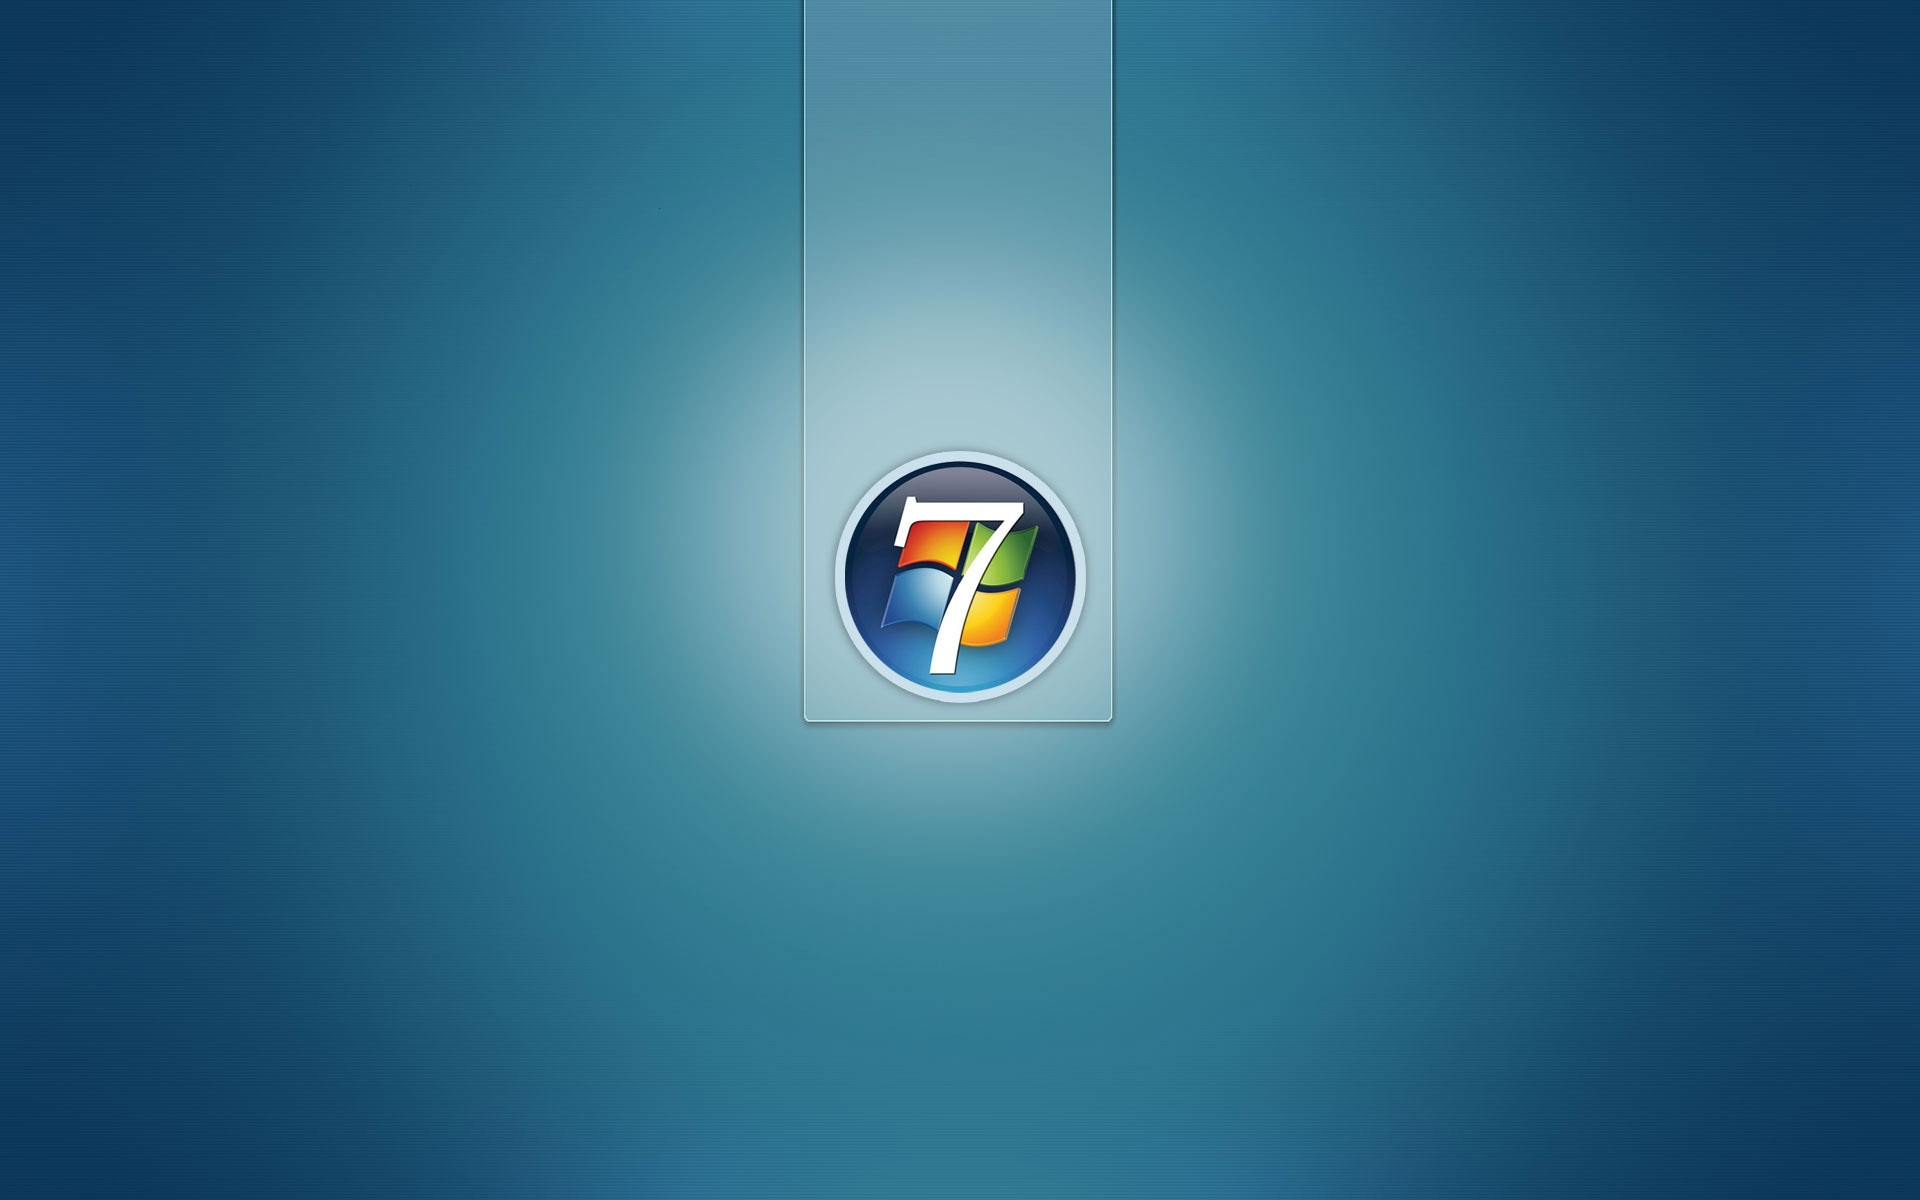 Widescreen Windows 7 wallpaper